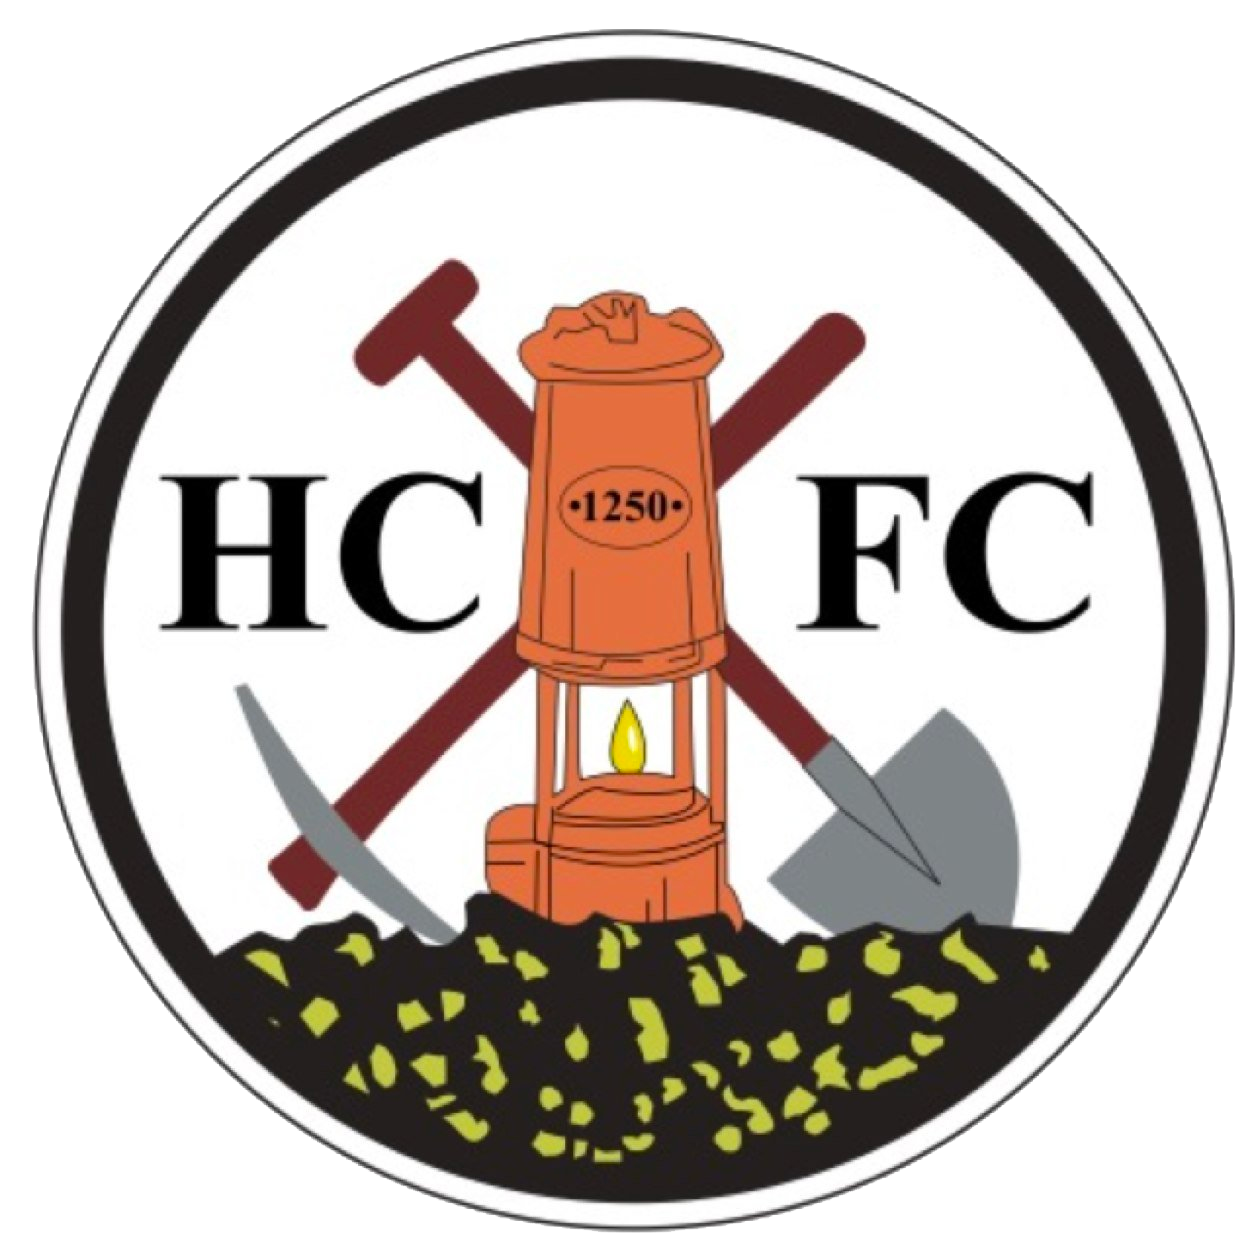 Harworth Colliery Reserves